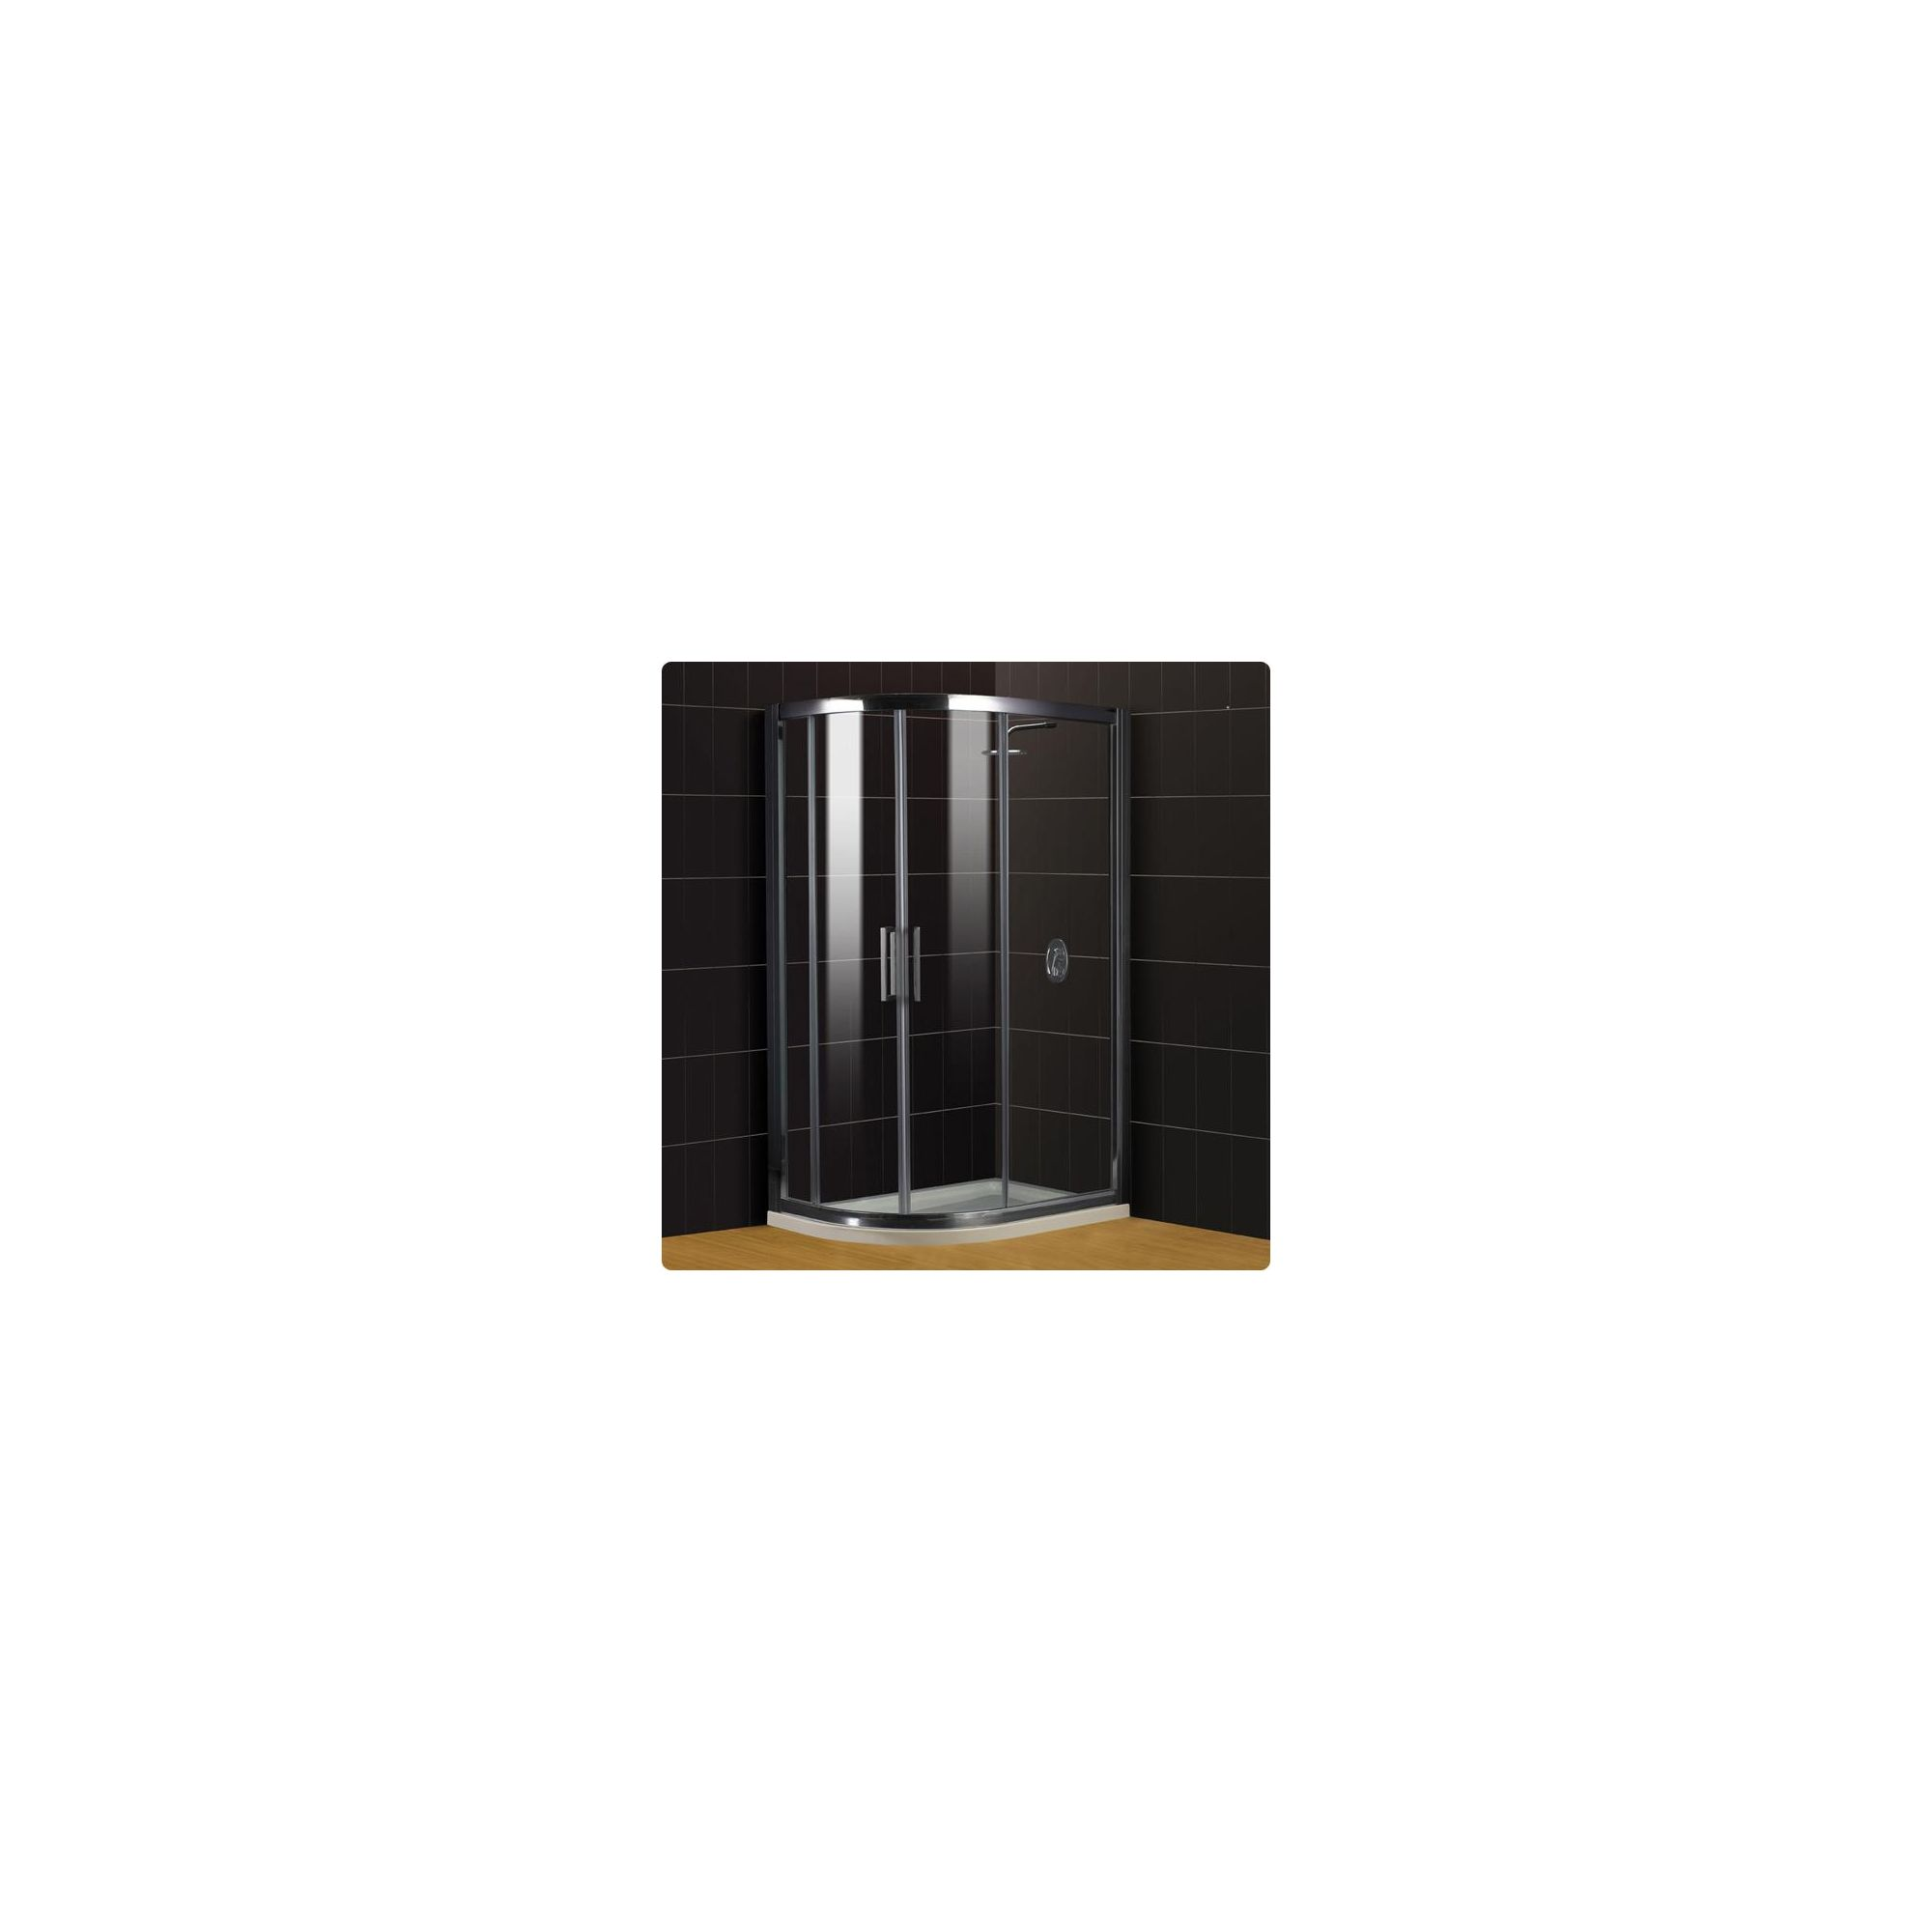 Duchy Supreme Silver Offset Quadrant Shower Enclosure (Complete with Tray) 1000mm x 760mm, 8mm Glass at Tescos Direct